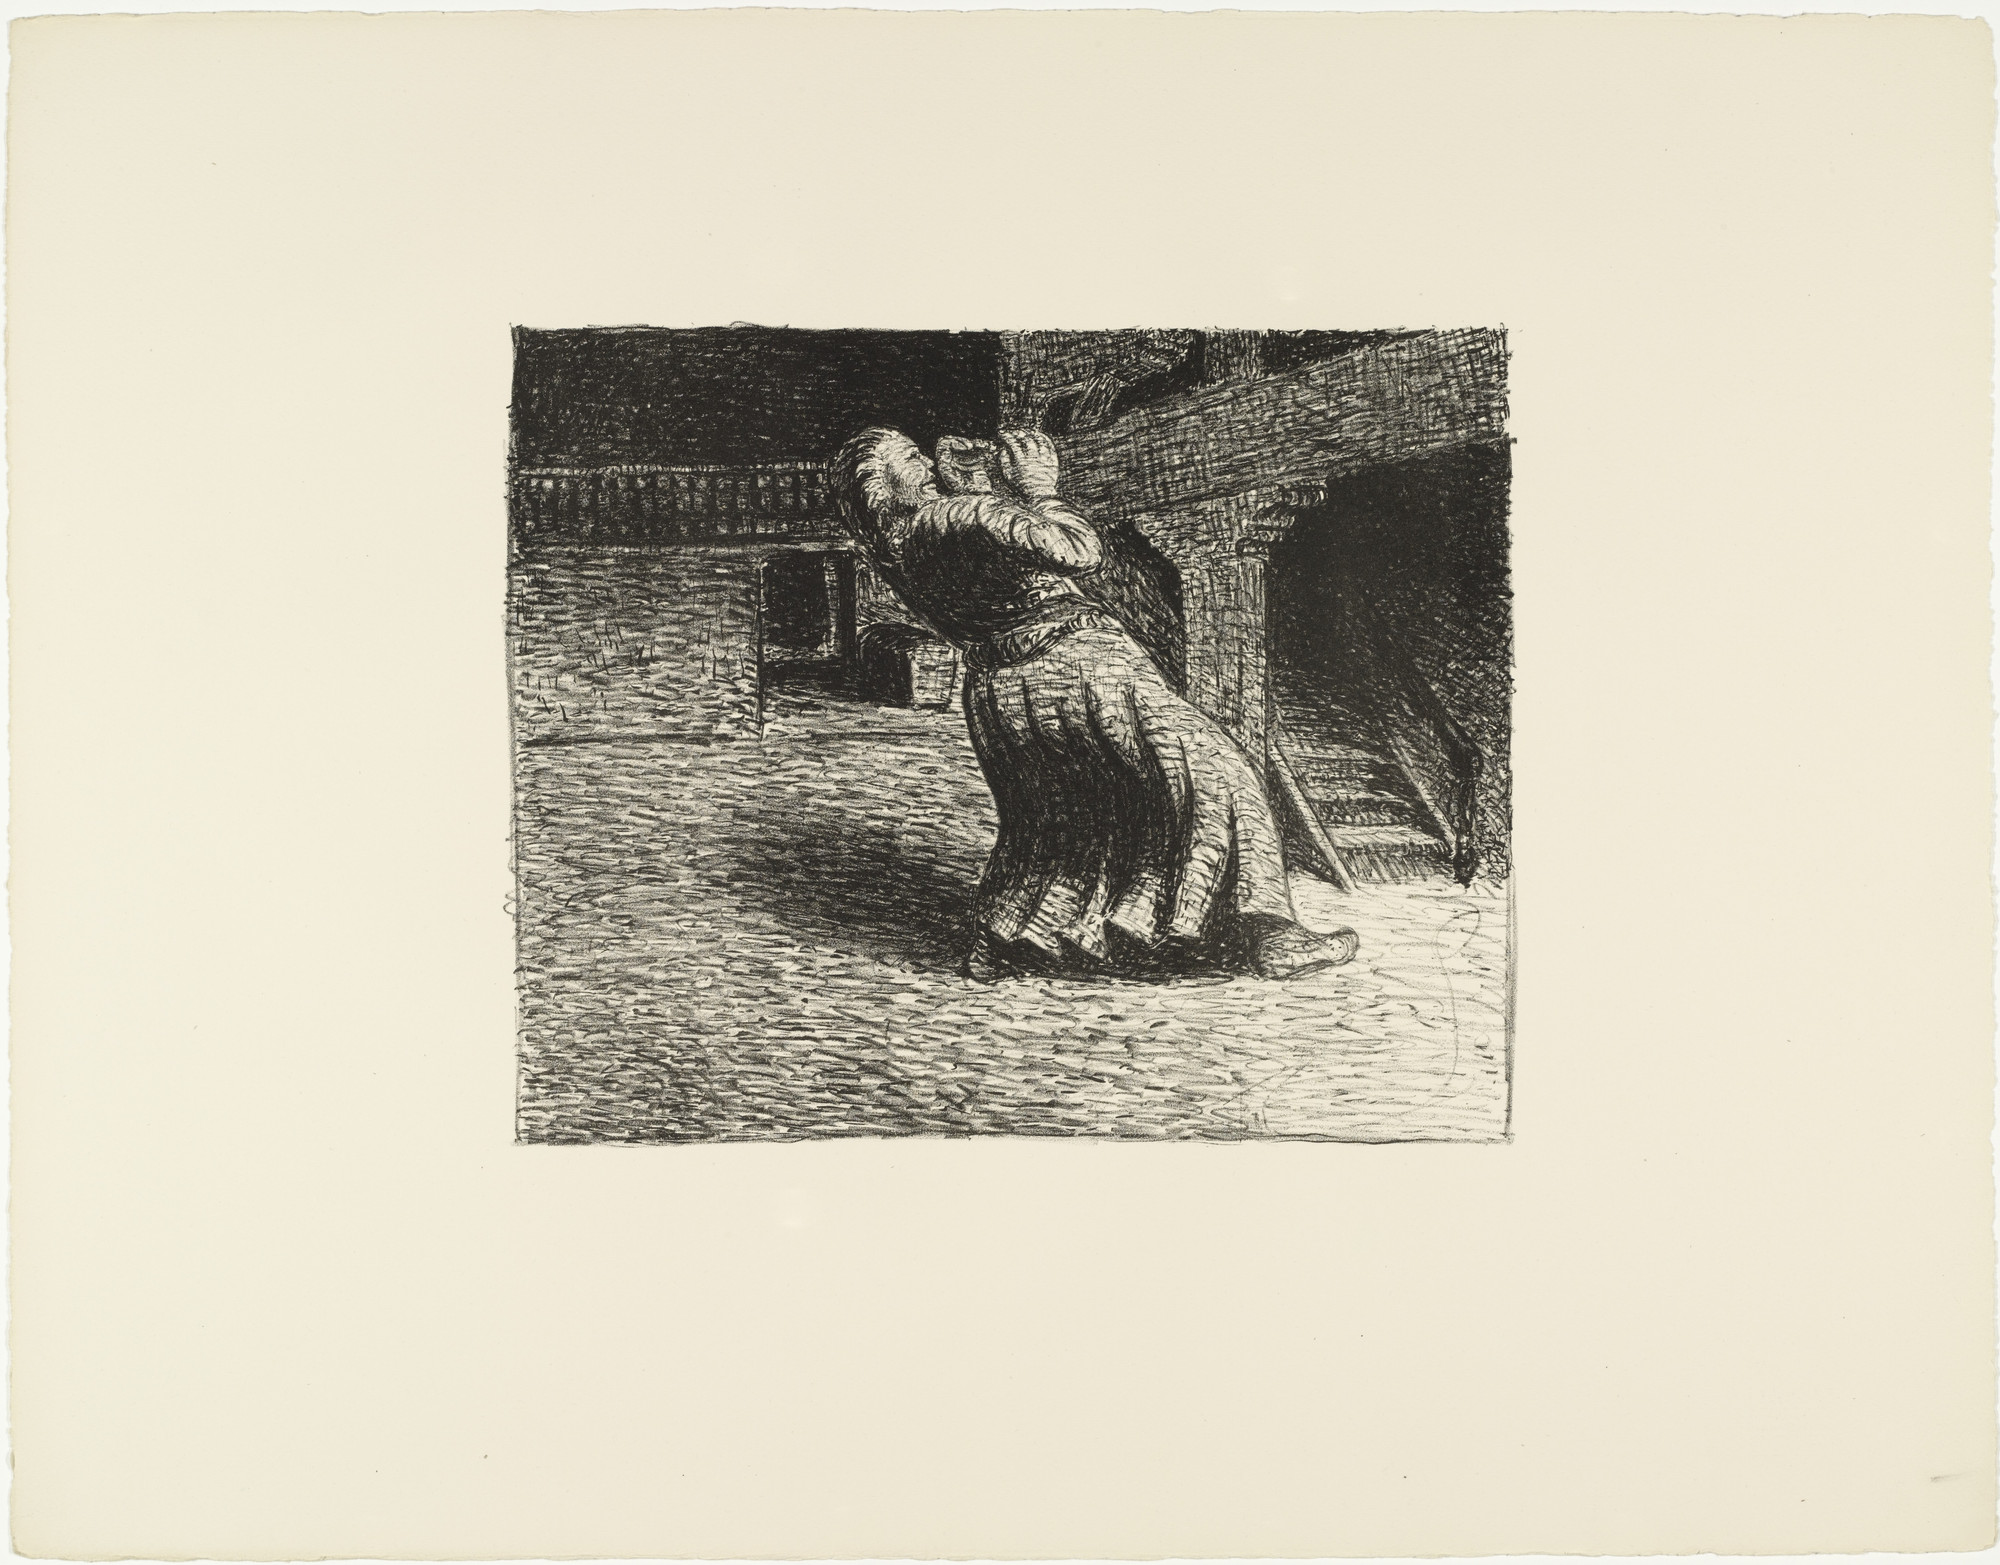 Ernst Barlach. The Invisible 1 (Das Unsichtbare 1) from The Dead Day (Der tote Tag). (1910-11, published 1912)